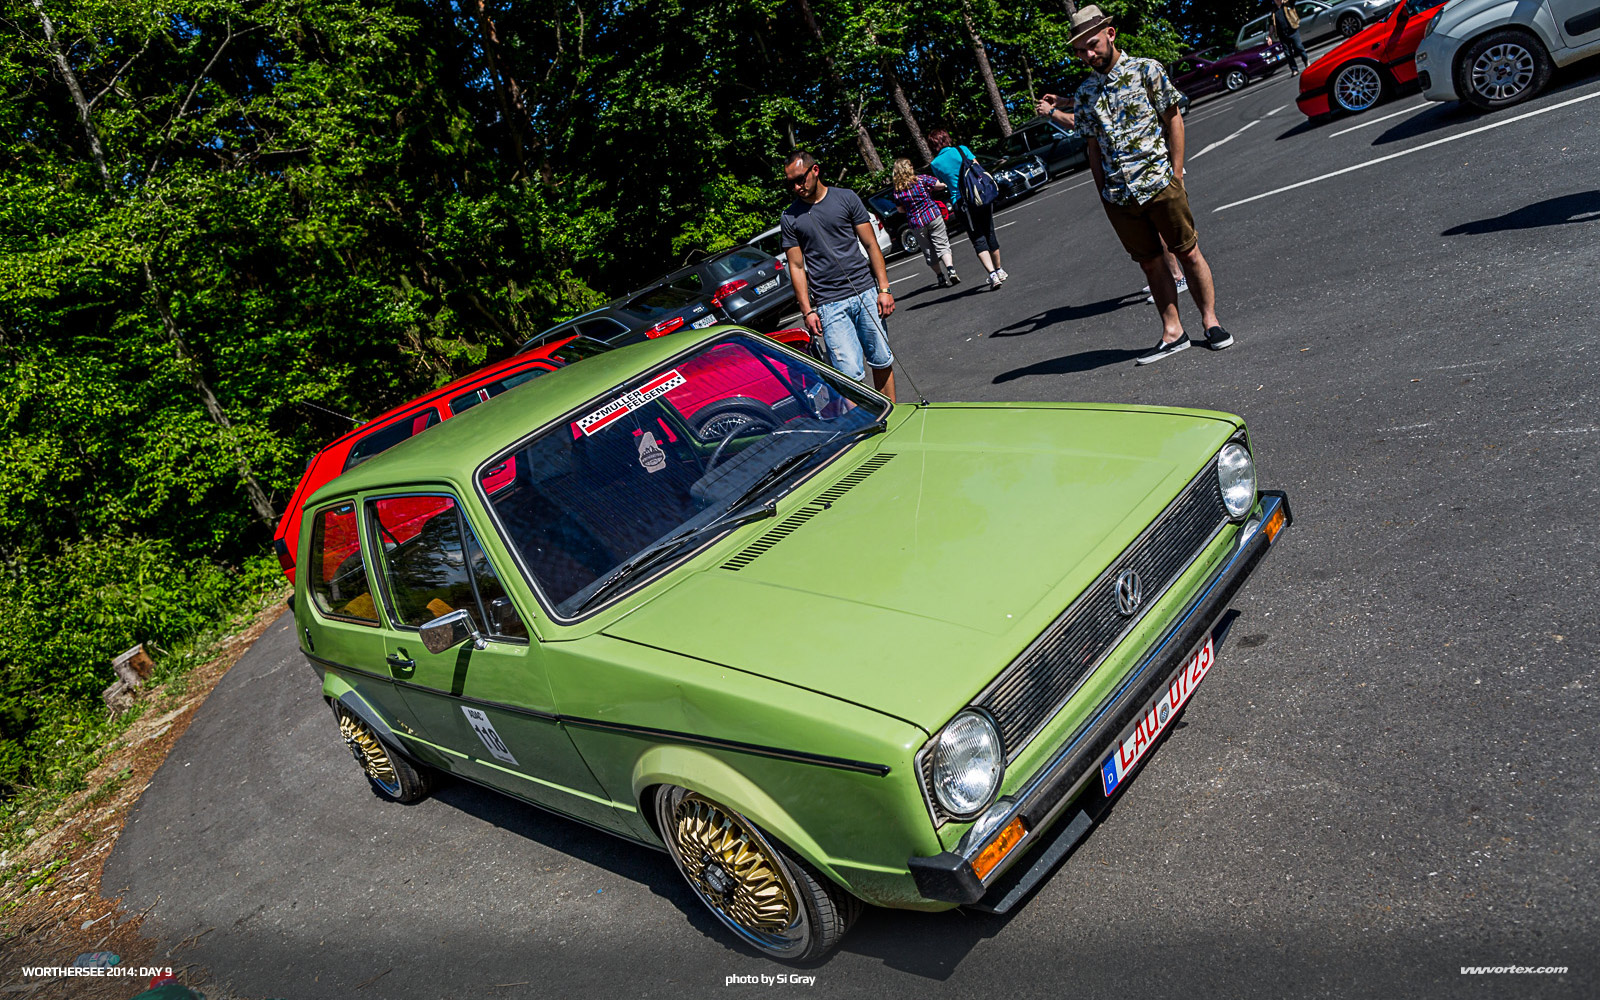 2014-Worthersee-Day-9-Si-Gray-407